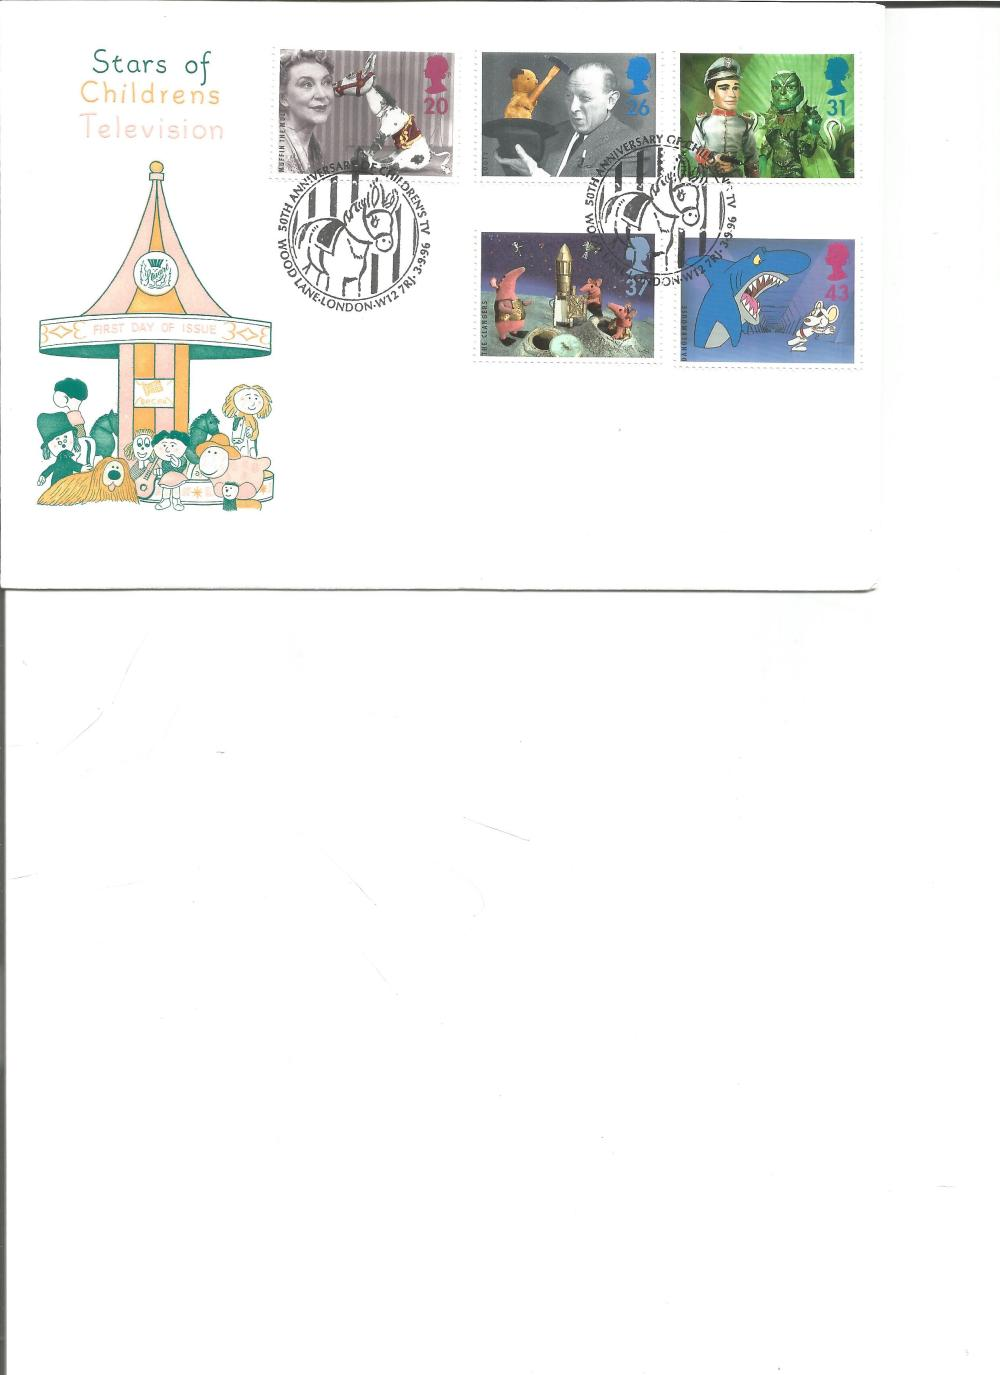 FDC Stars of Childrens Television c/w set of five commemorative stamps double PM 50th Anniversary of